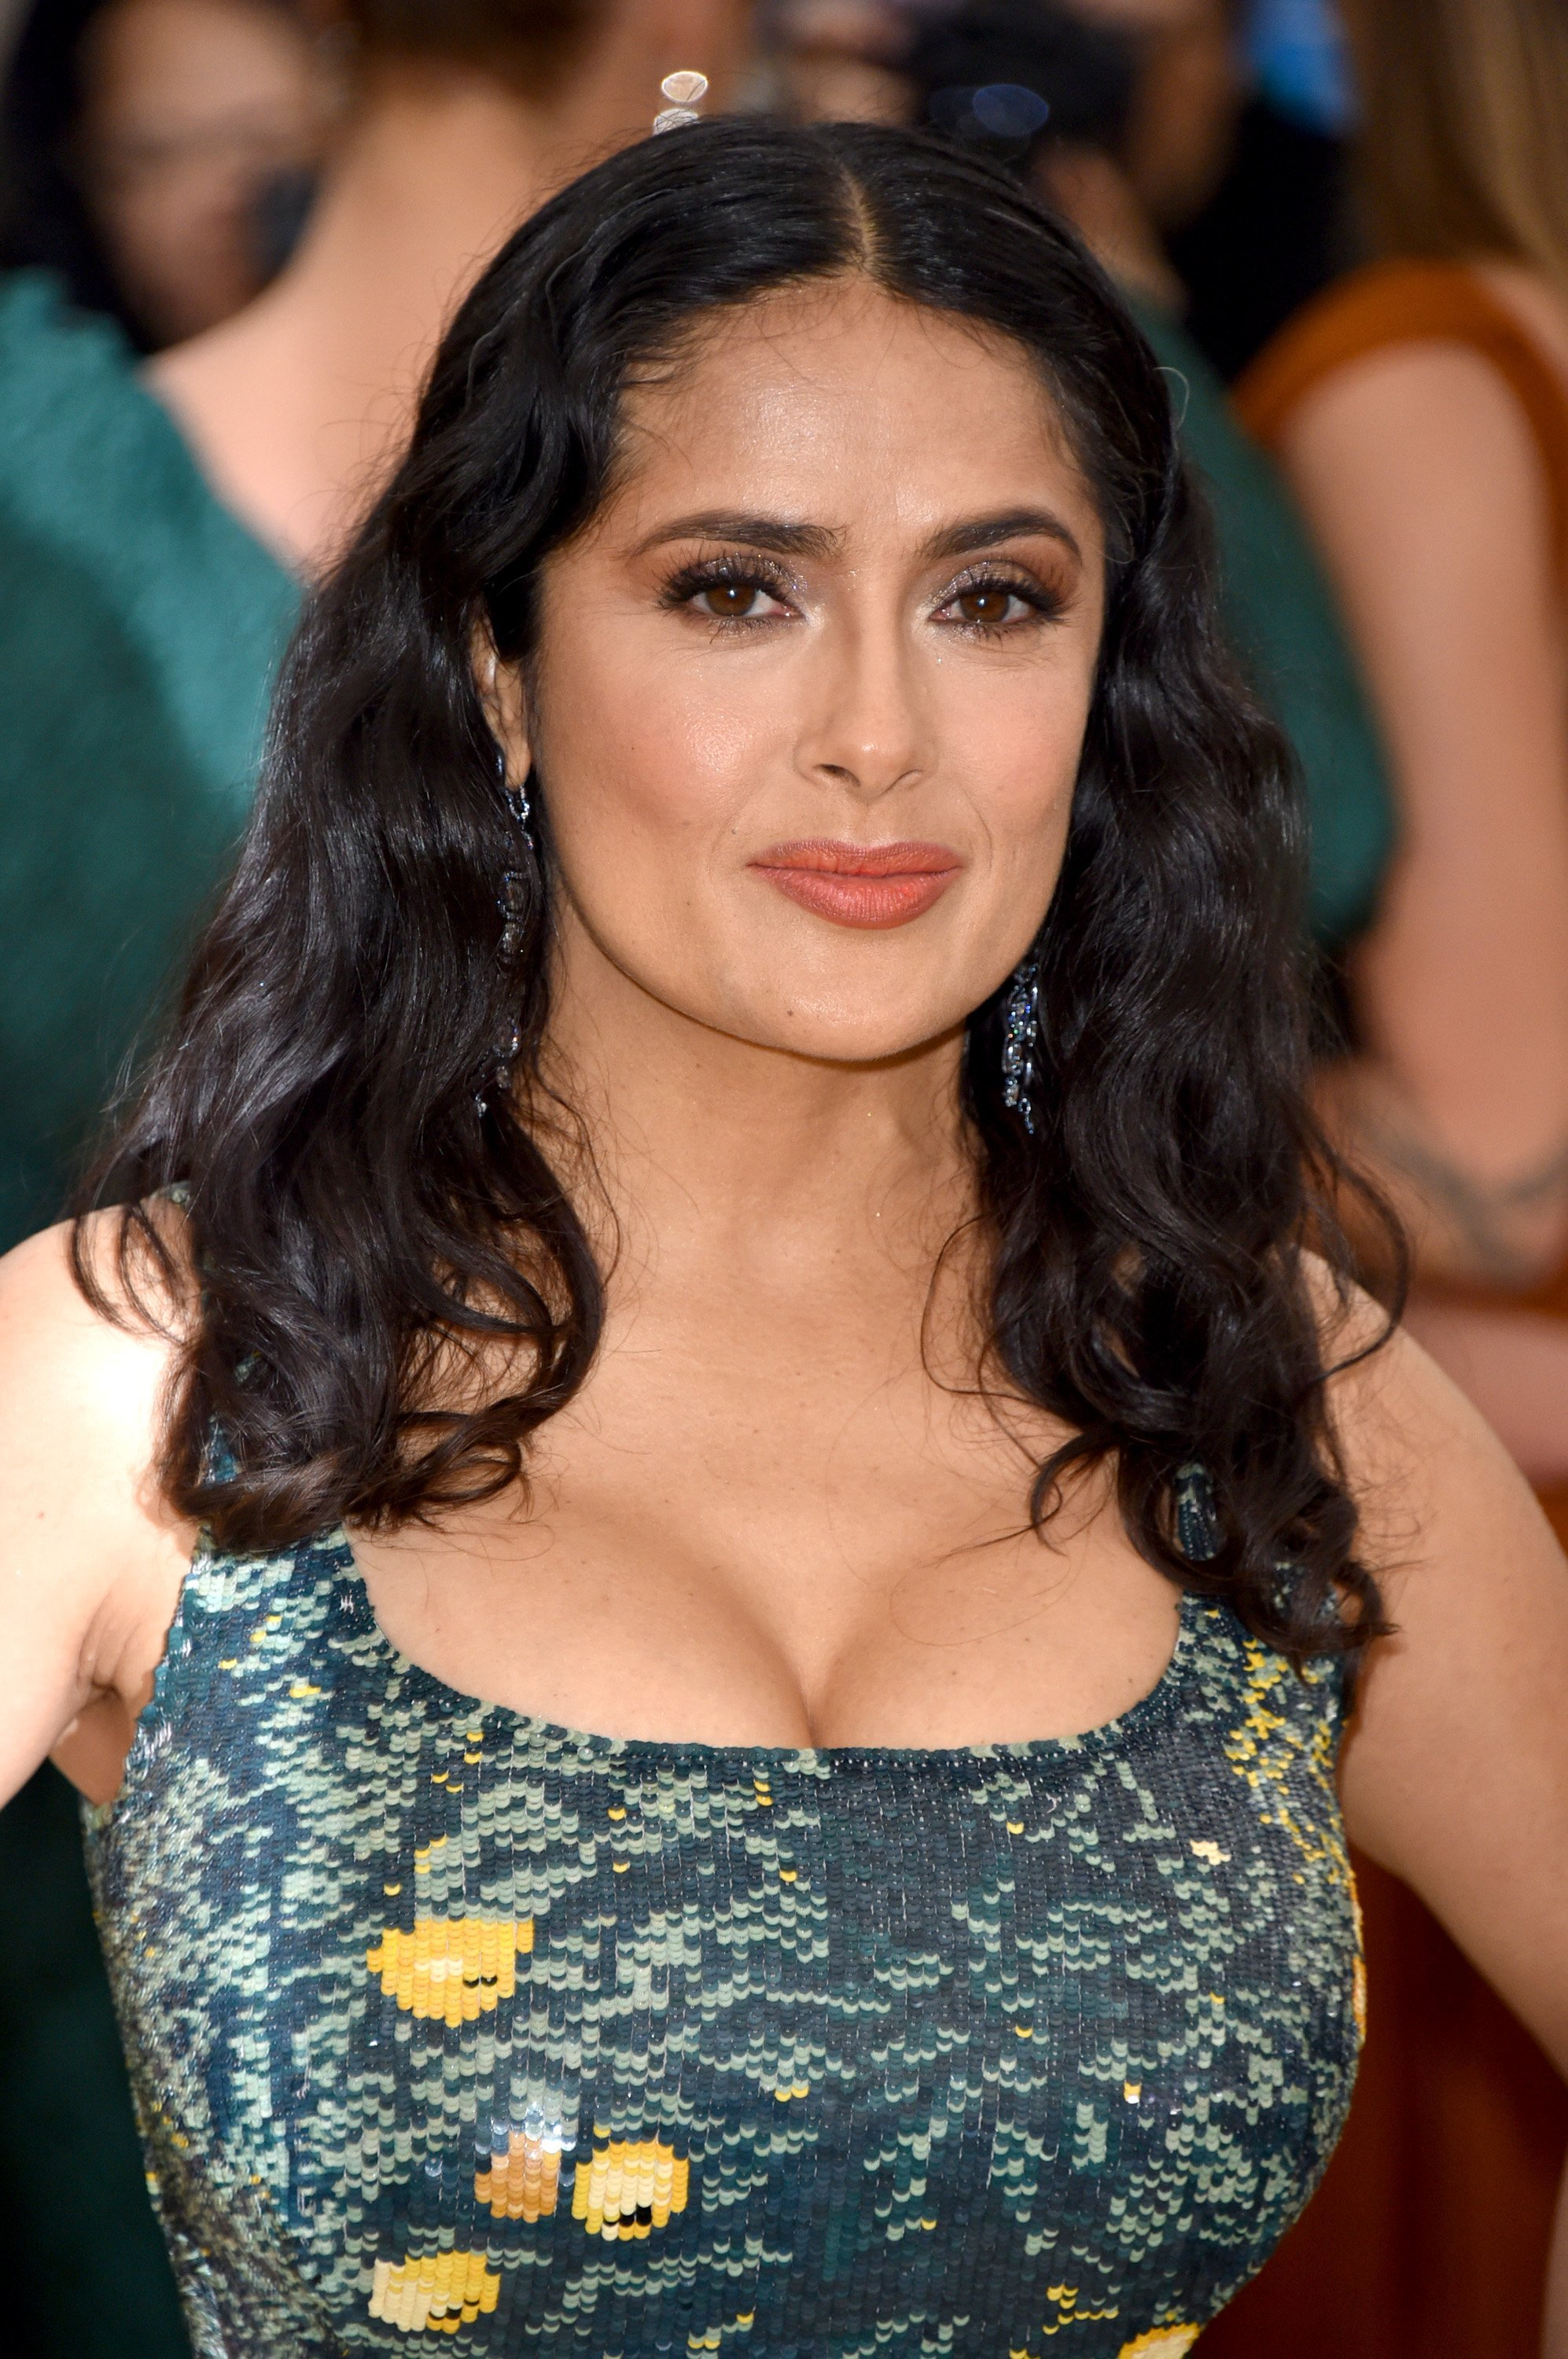 Salma Hayek, actress, will be featured on the cover of British Vogue for the September 2019 issue | Photo: Getty Images